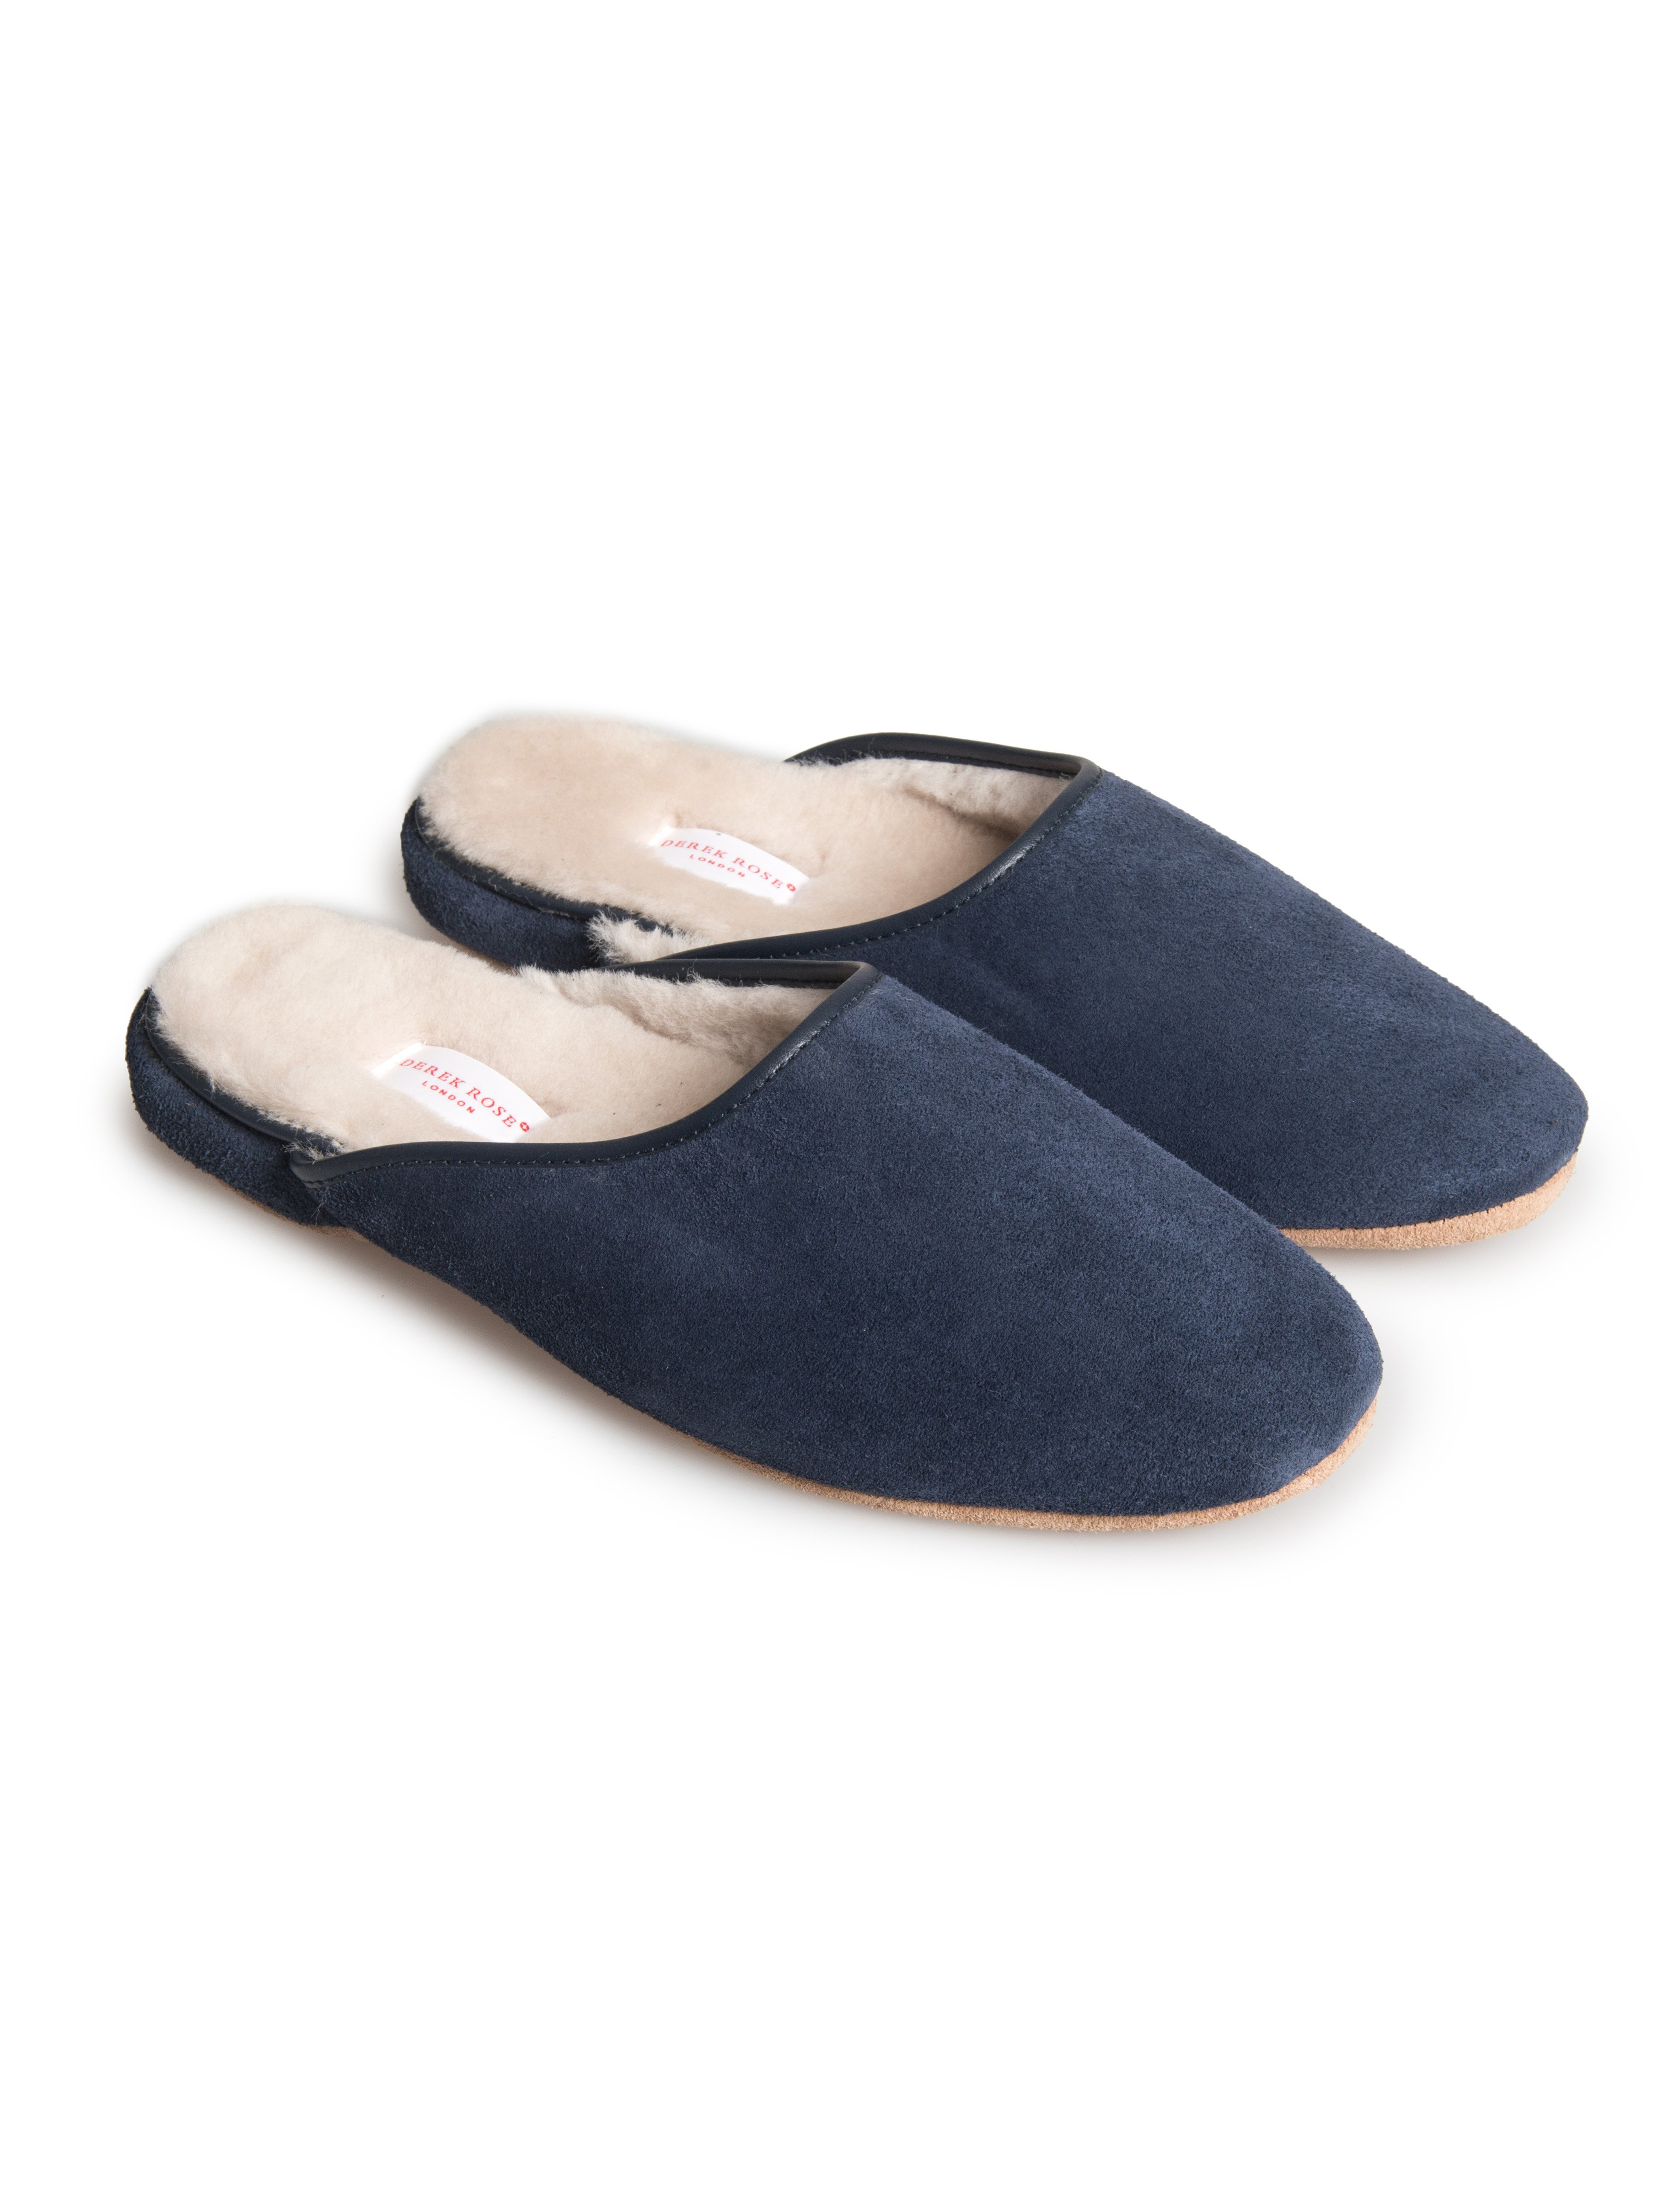 Men's Open-Back Slipper Douglas Sheepskin Navy